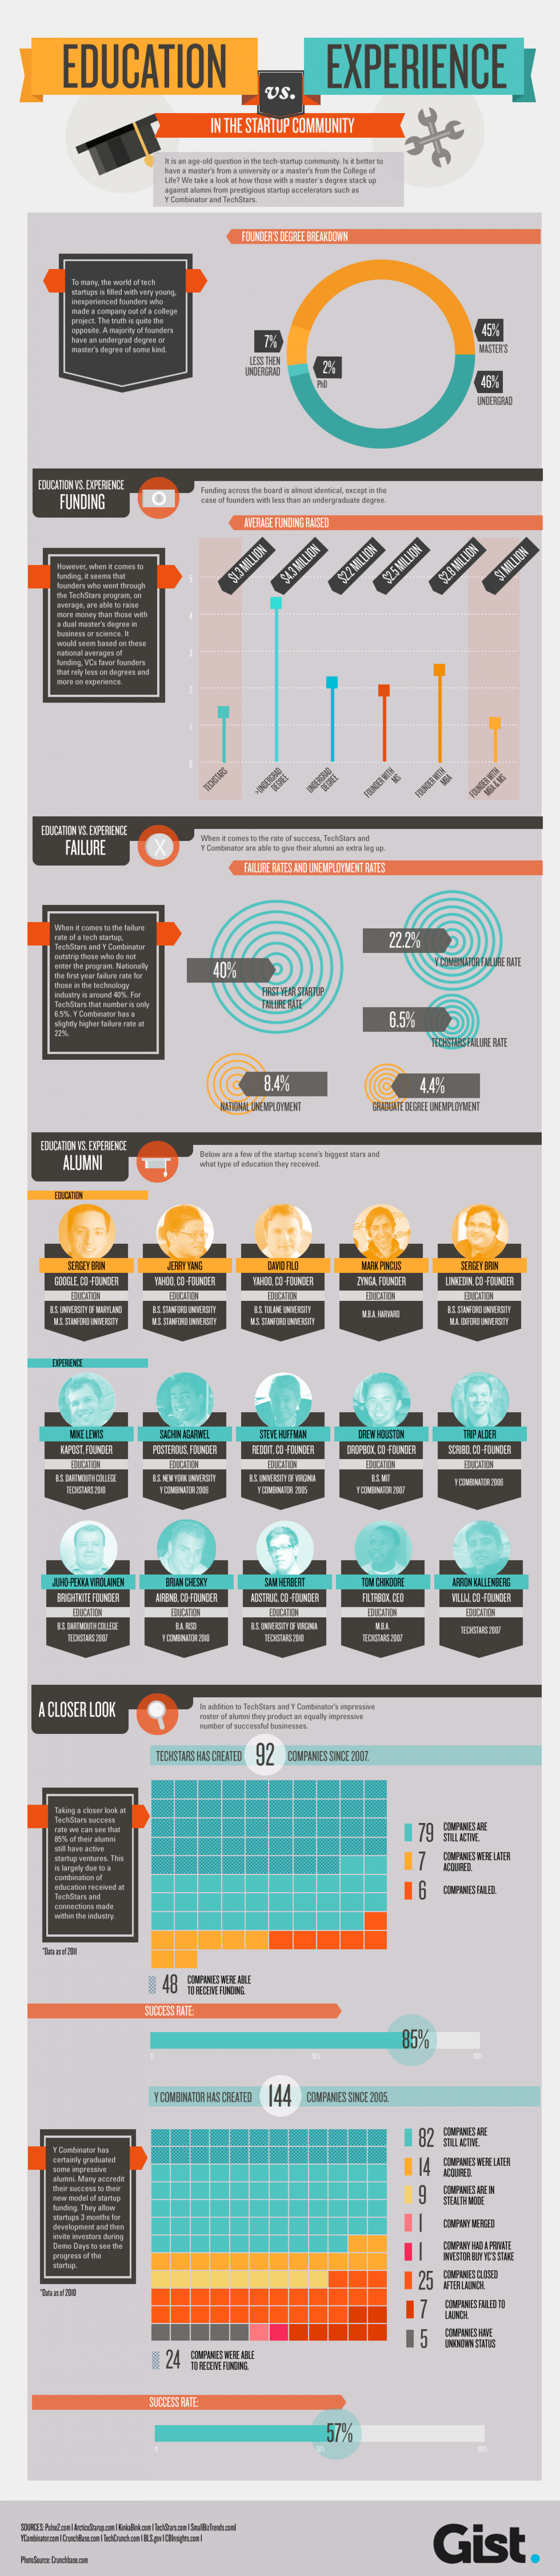 Do Entrepreneurs Need to Go to College?  Infographic